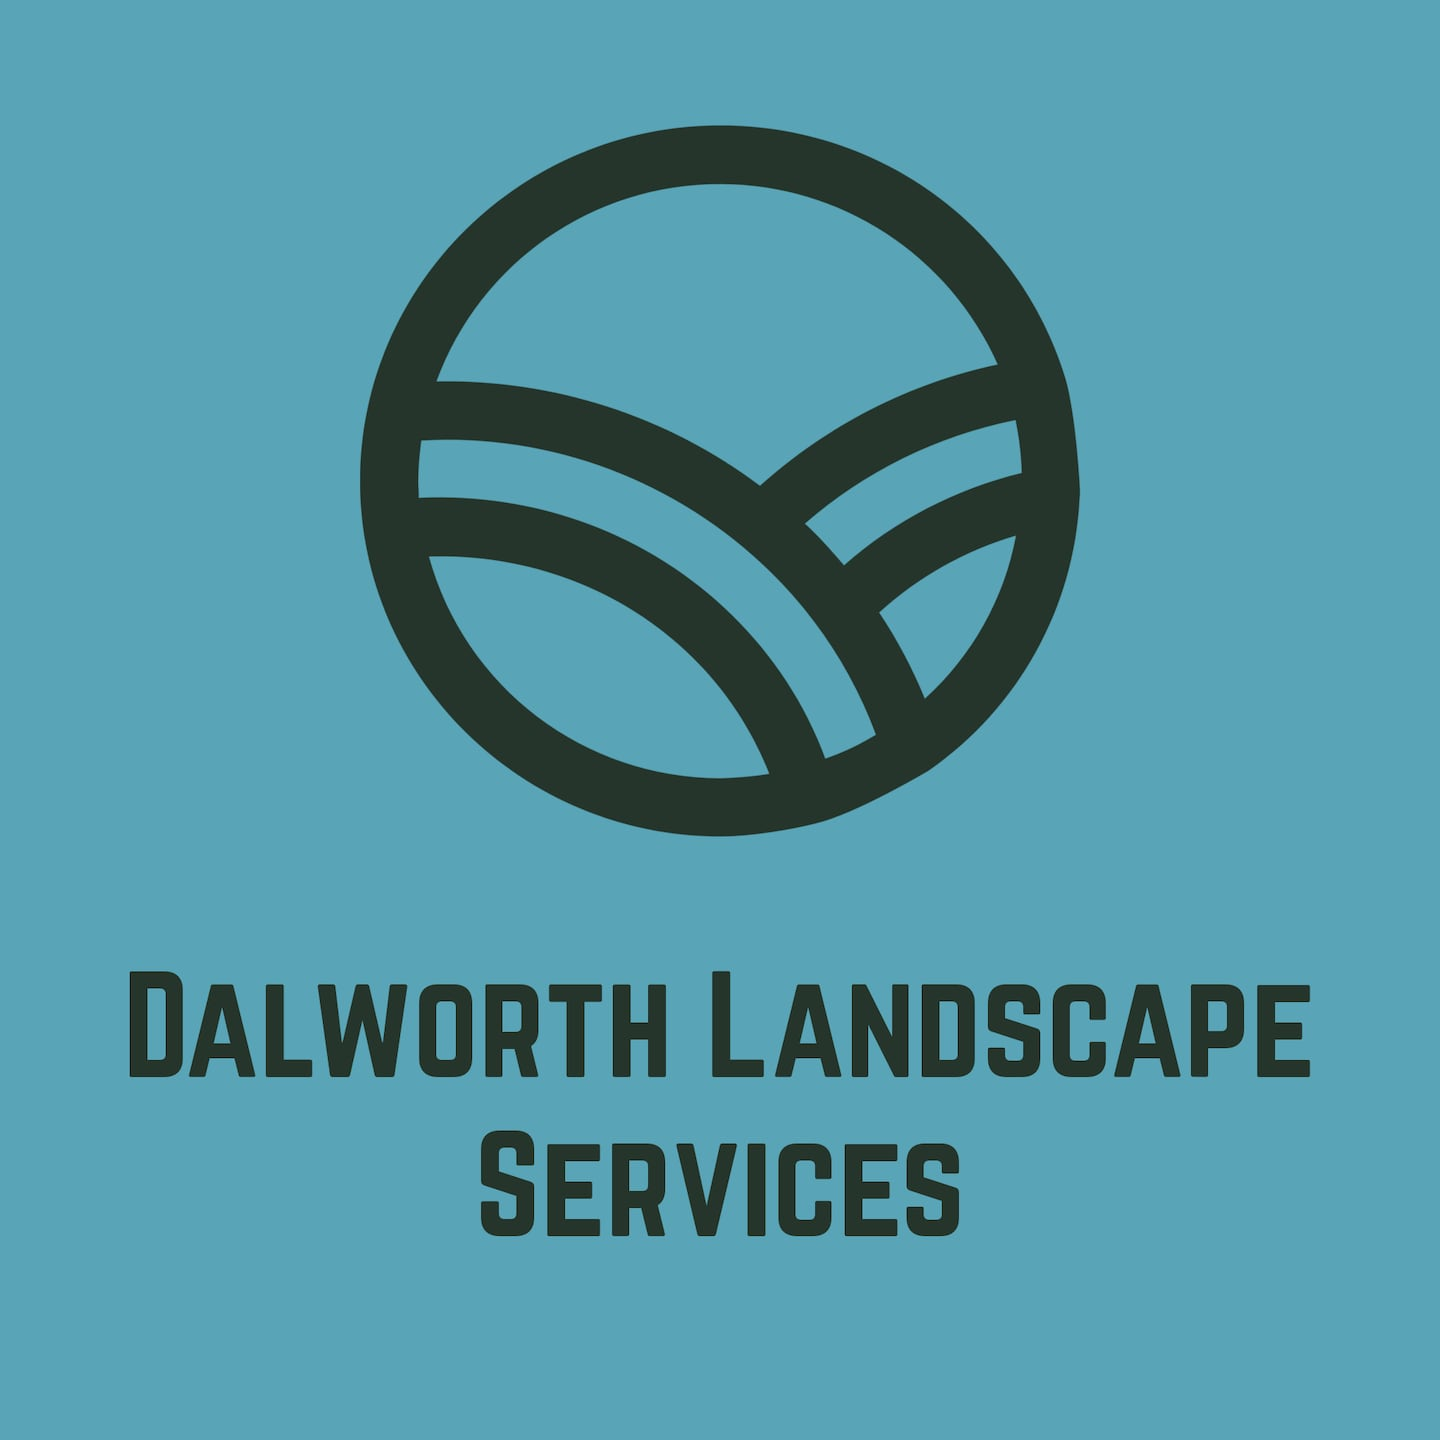 Dalworth Landscape Services